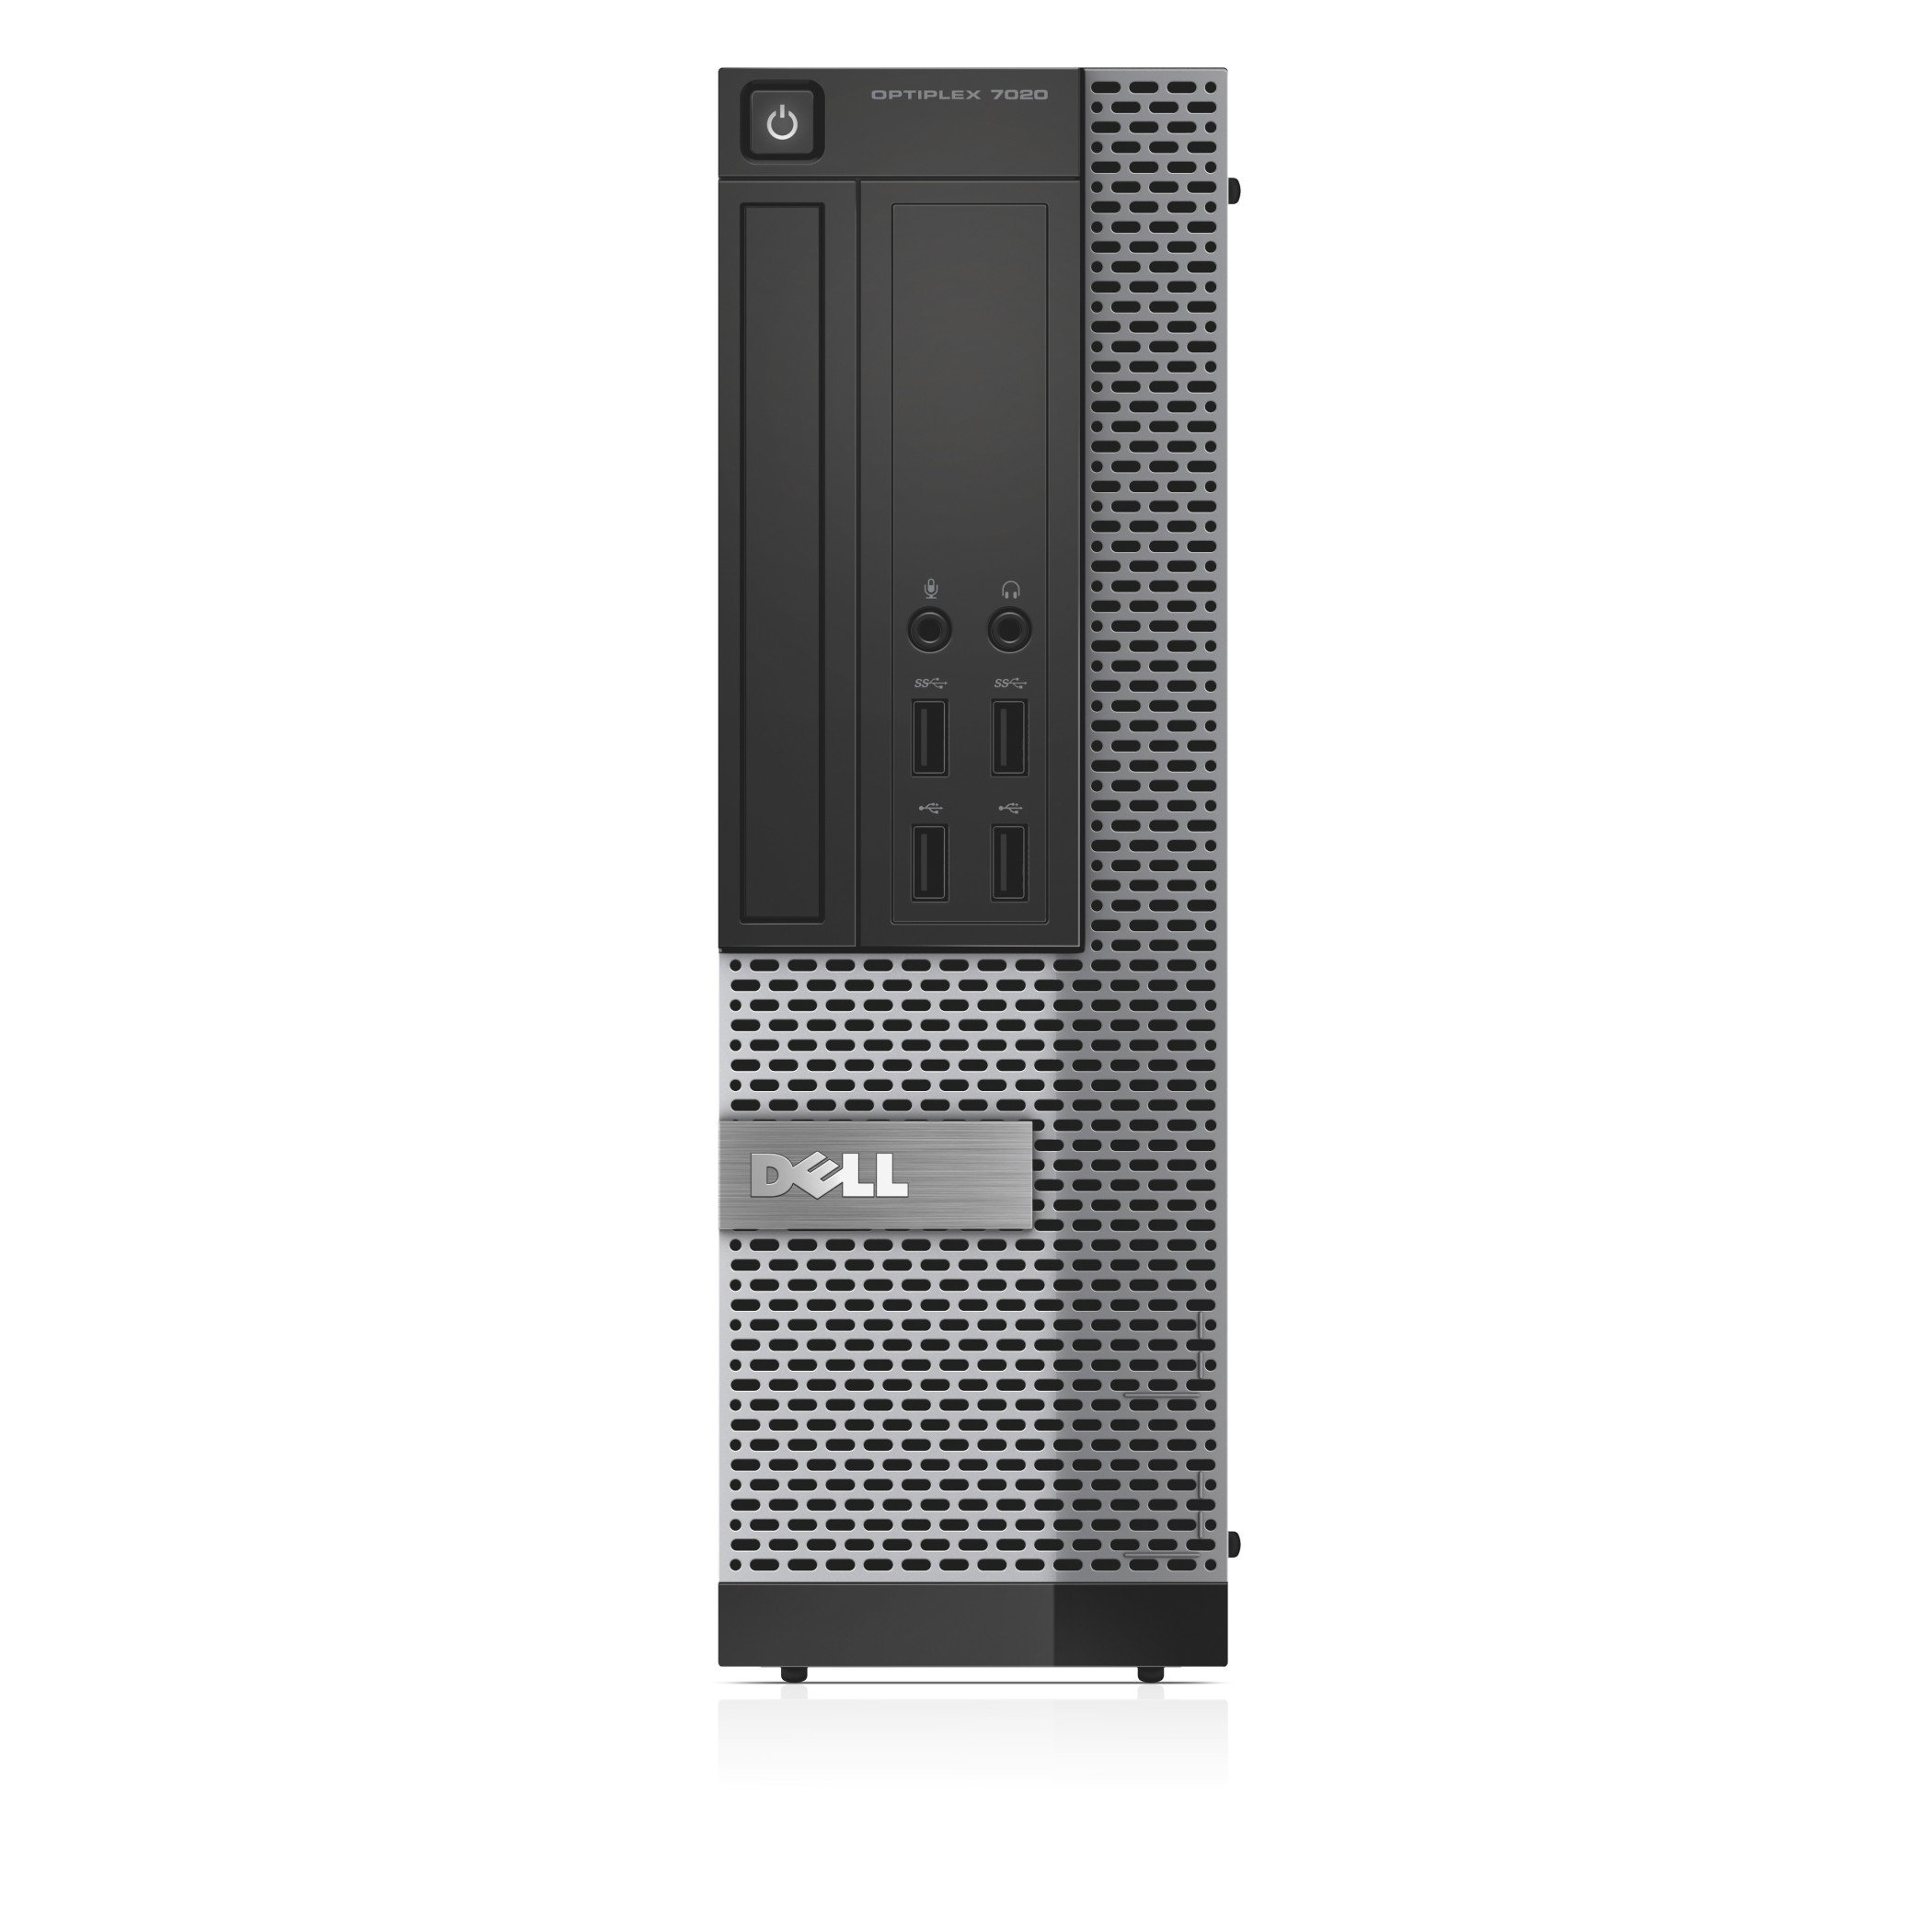 Dell OptiPlex 7020 Desktop Computer (Intel Quad Core i7-4790 up to 4GHz, Small Form Factor)